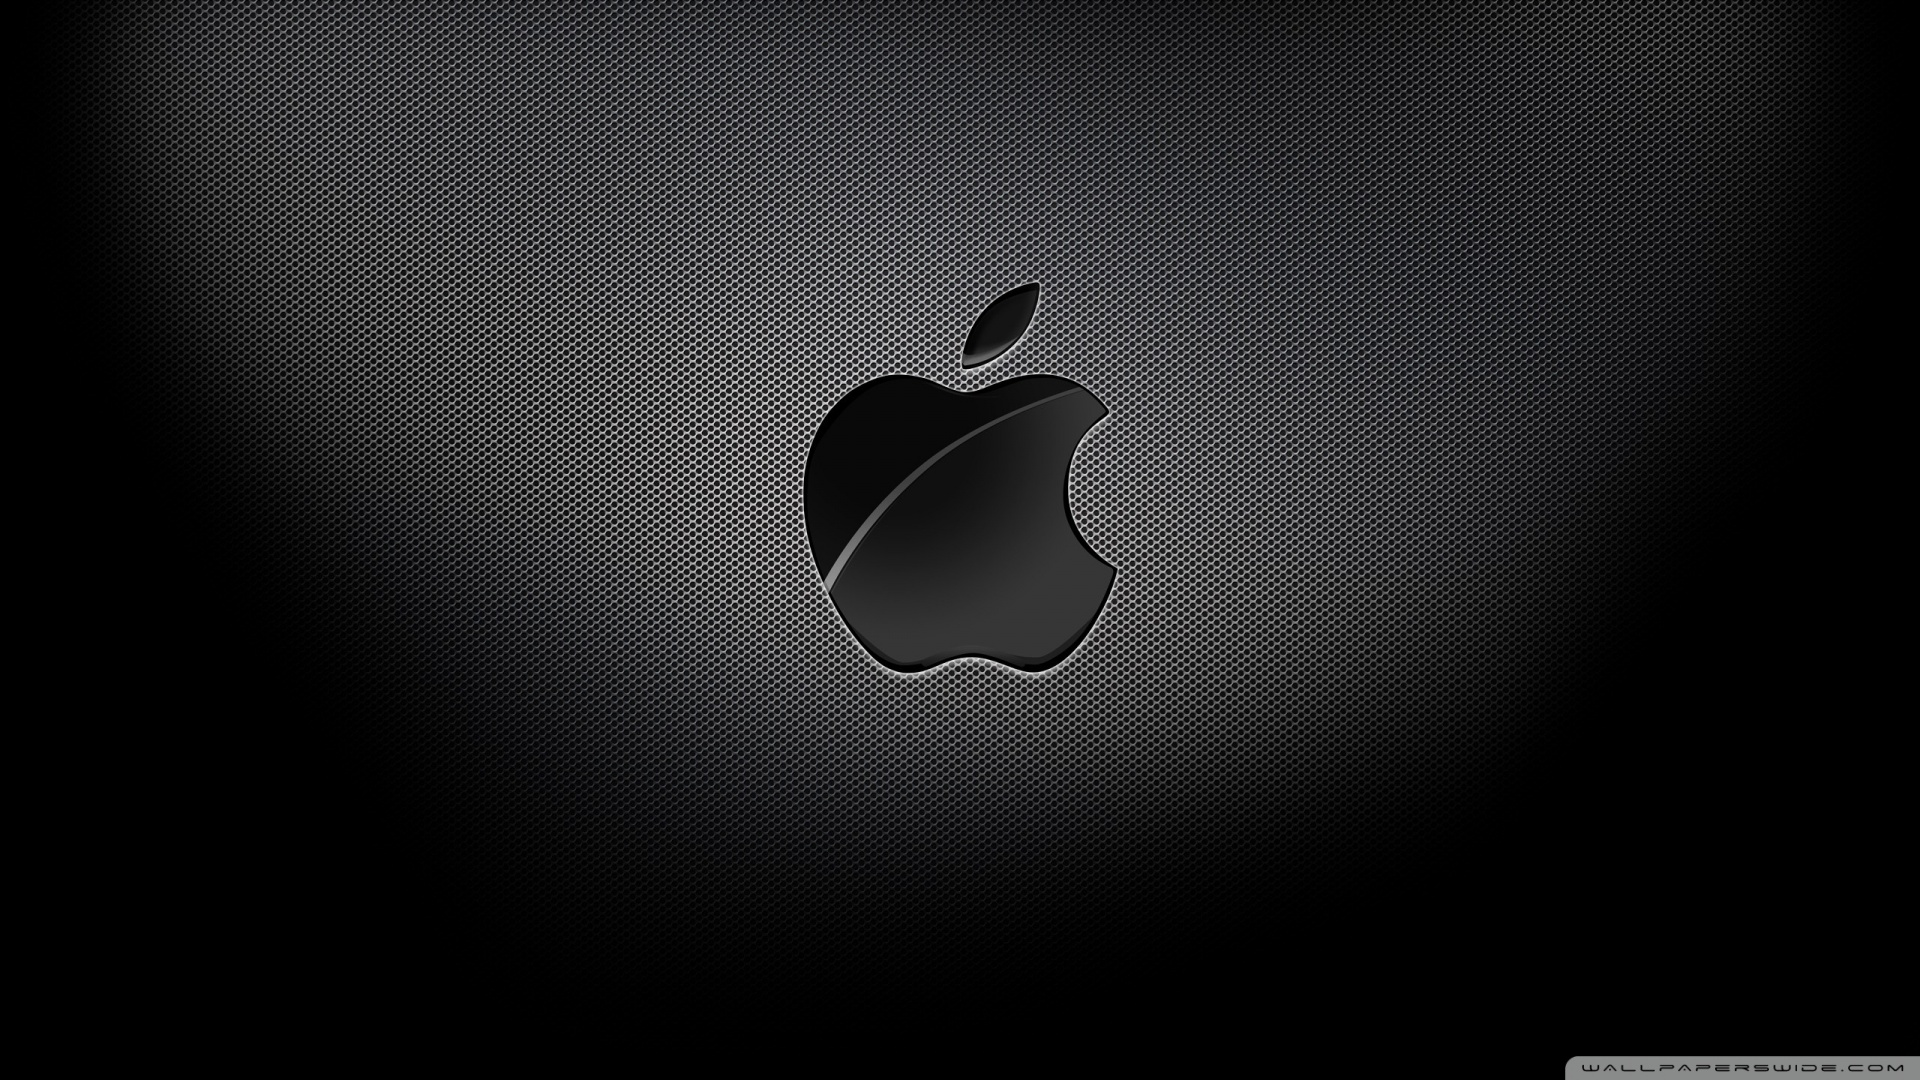 apple black background wallpapers55com   Best Wallpapers for PCs 1920x1080